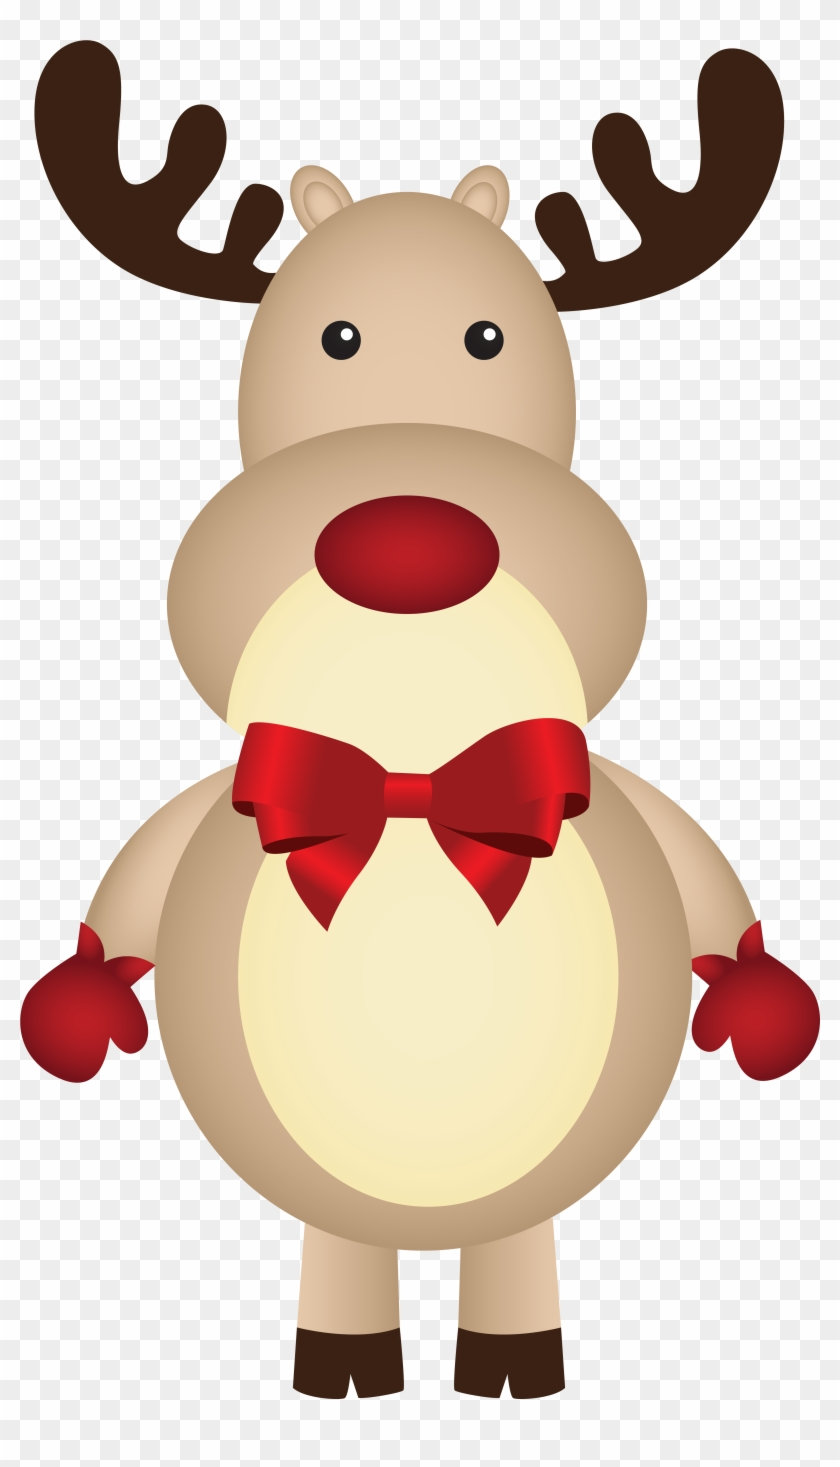 Christmas Rudolph With Bow Png Clipart Image - Rudolph Clipart Png #145243